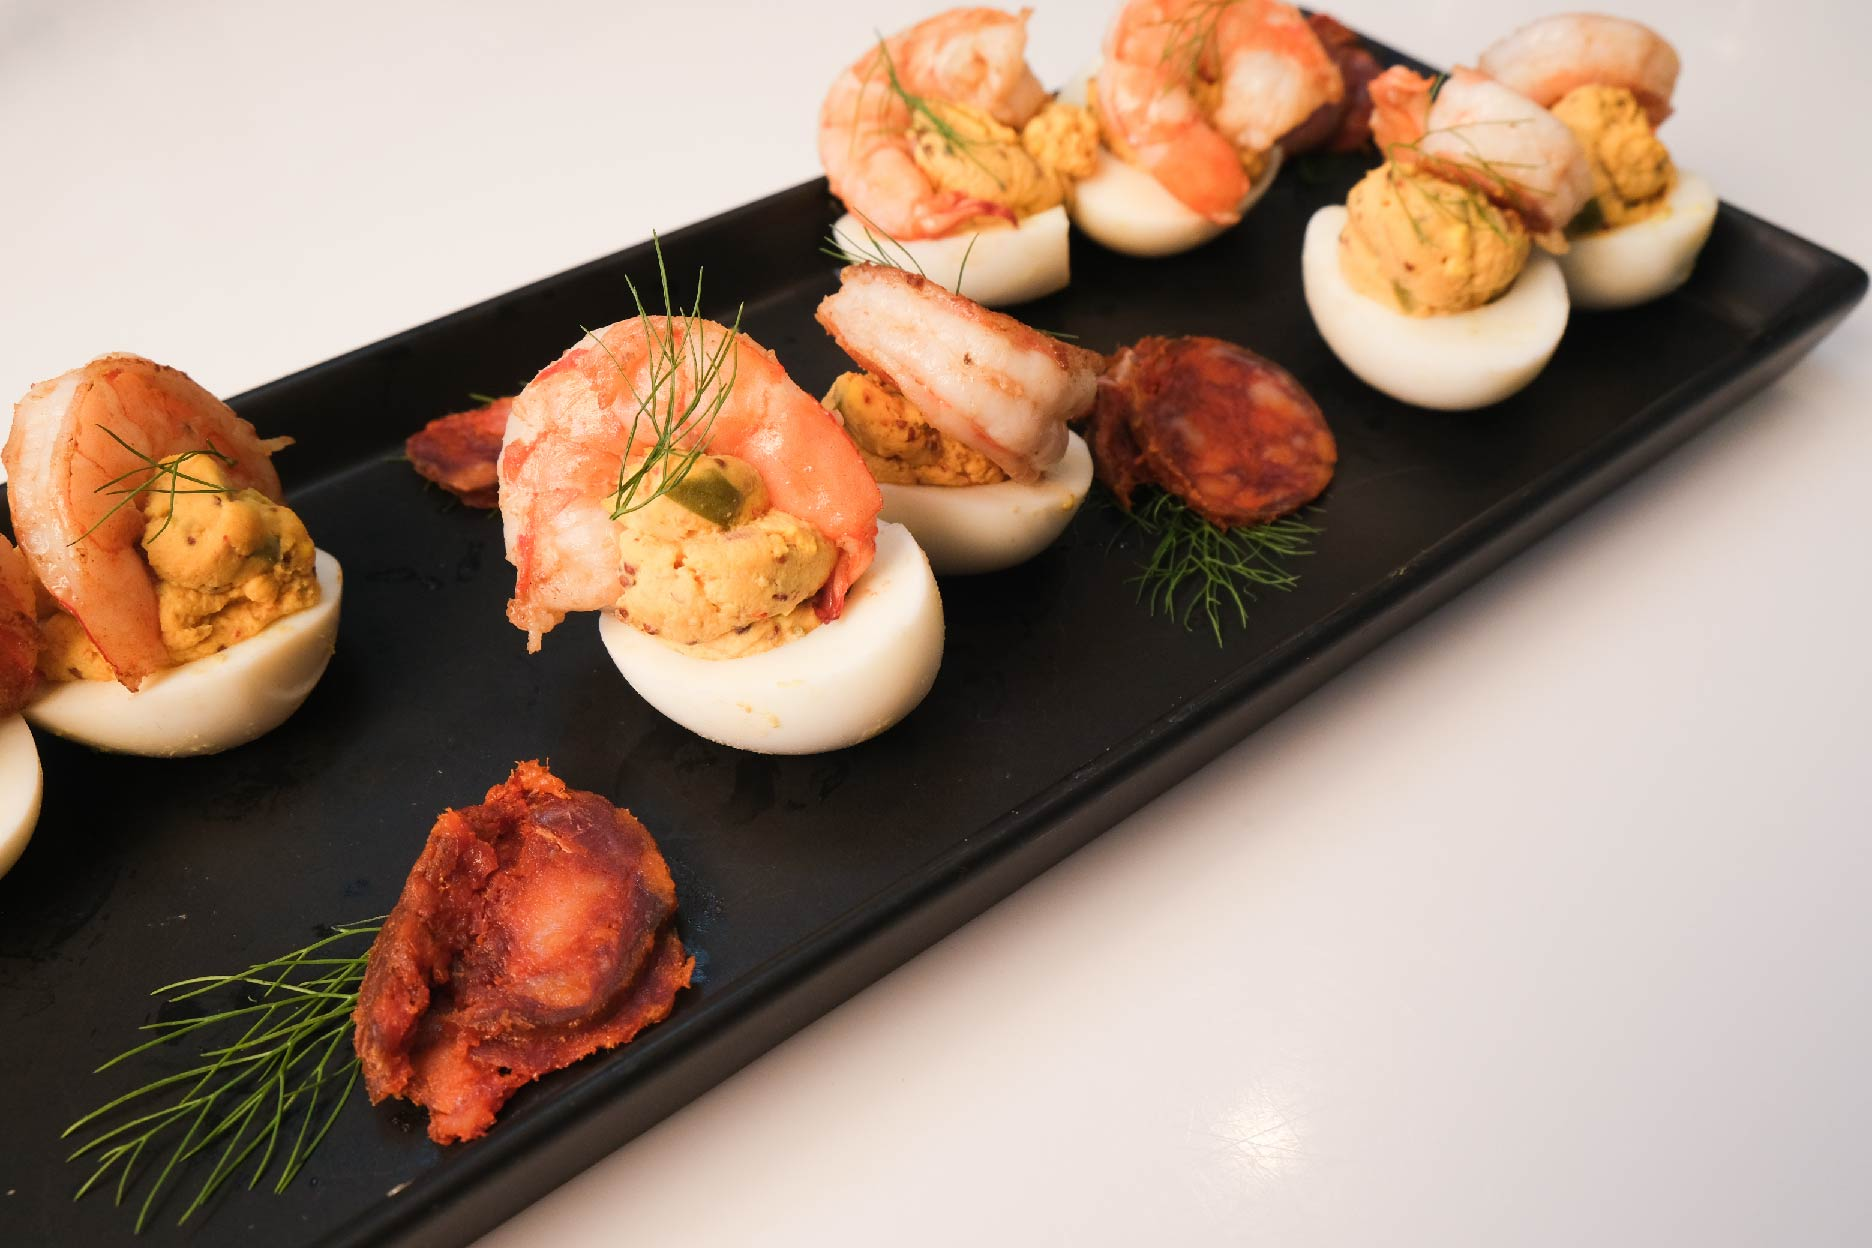 RECIPE: Harissa Spiced Deviled Eggs